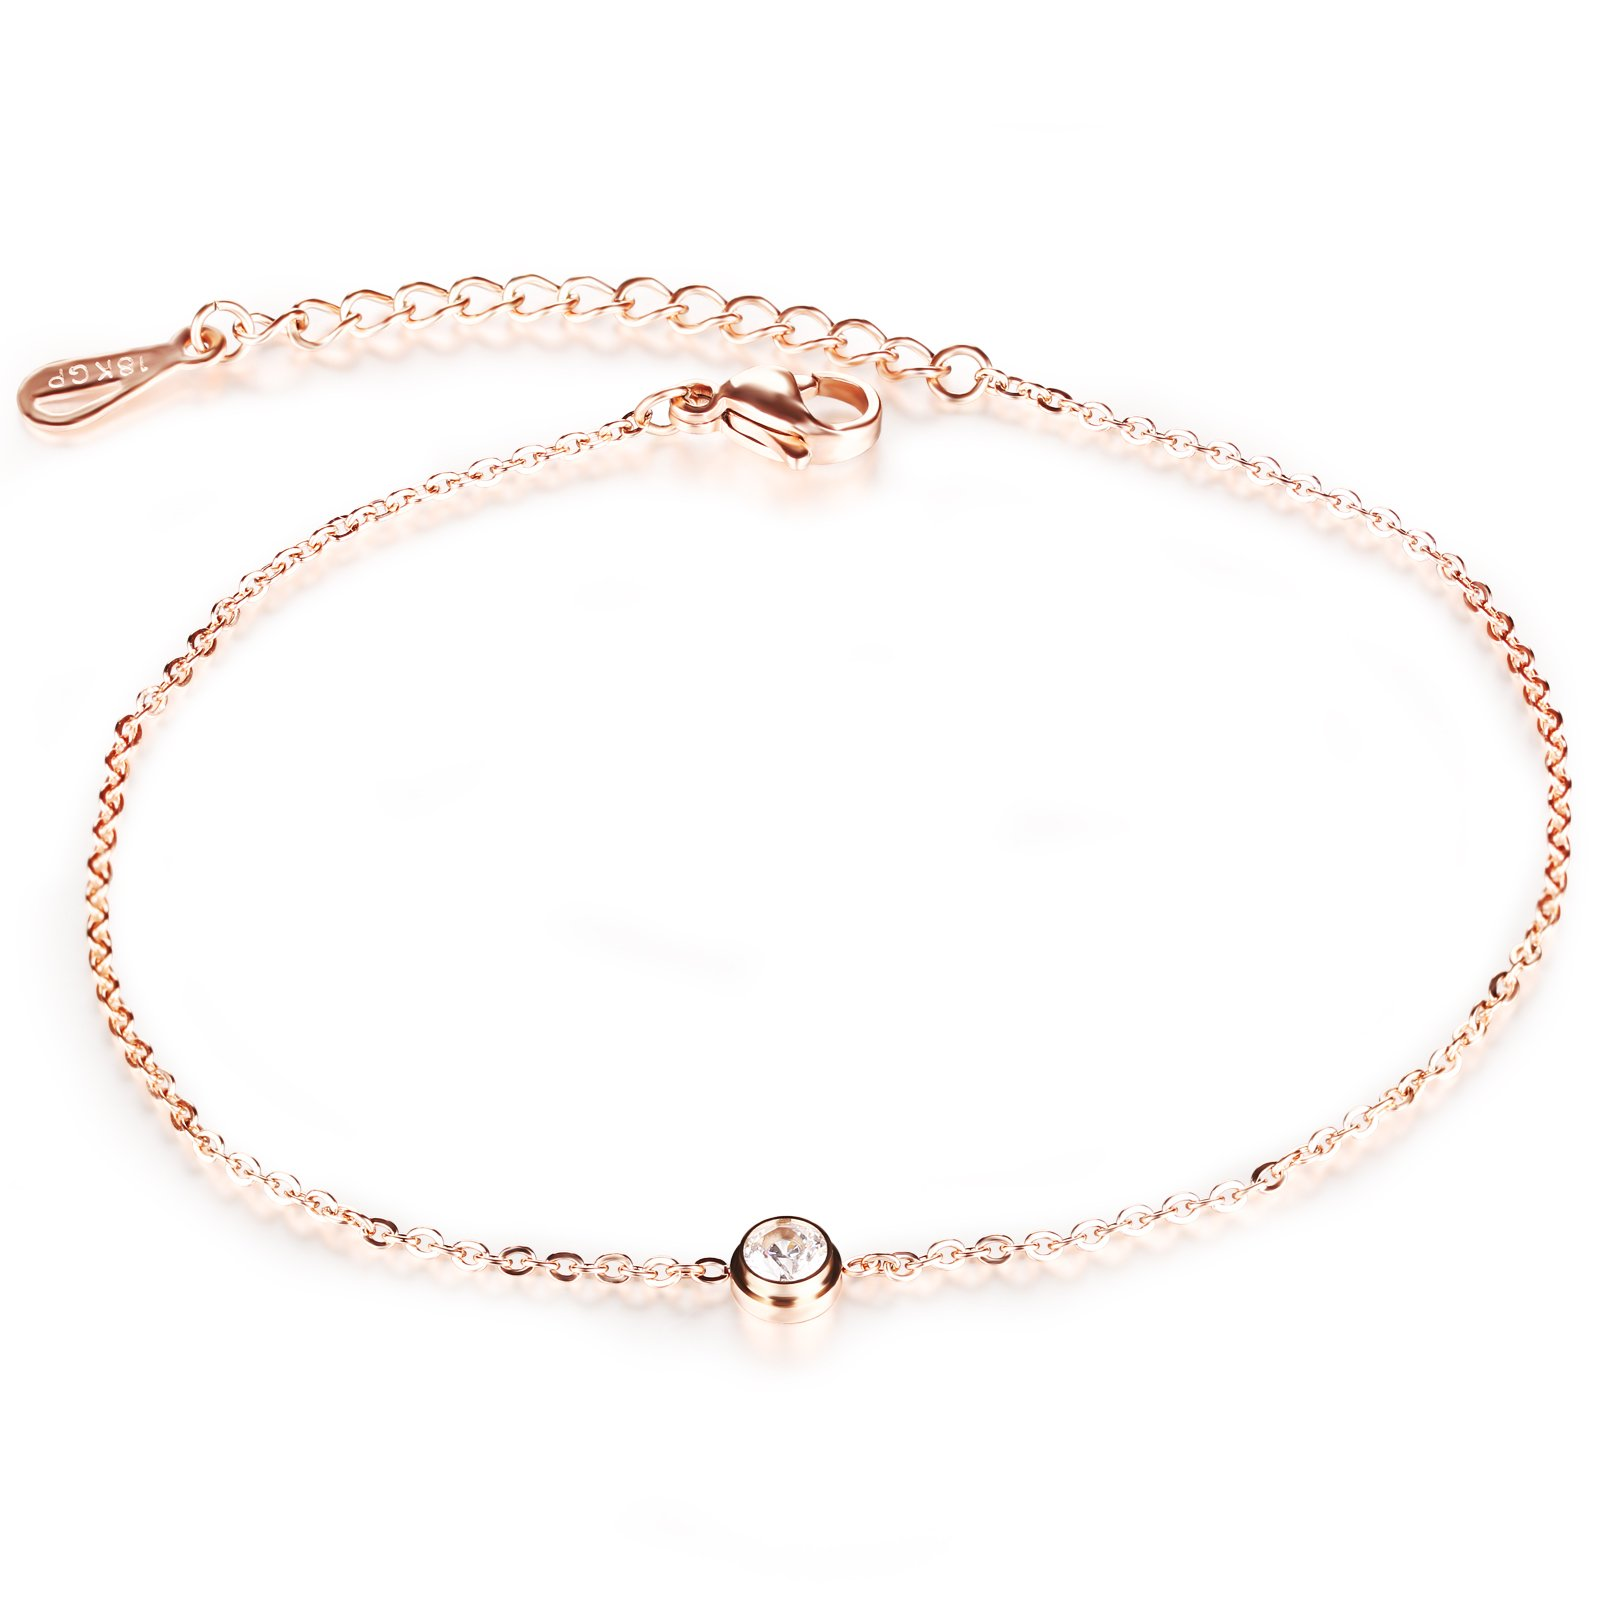 Women's Anklet 18K Rose Gold Tone Lucky CZ Foot Chain Summer Accessory Adjustable L8.46''